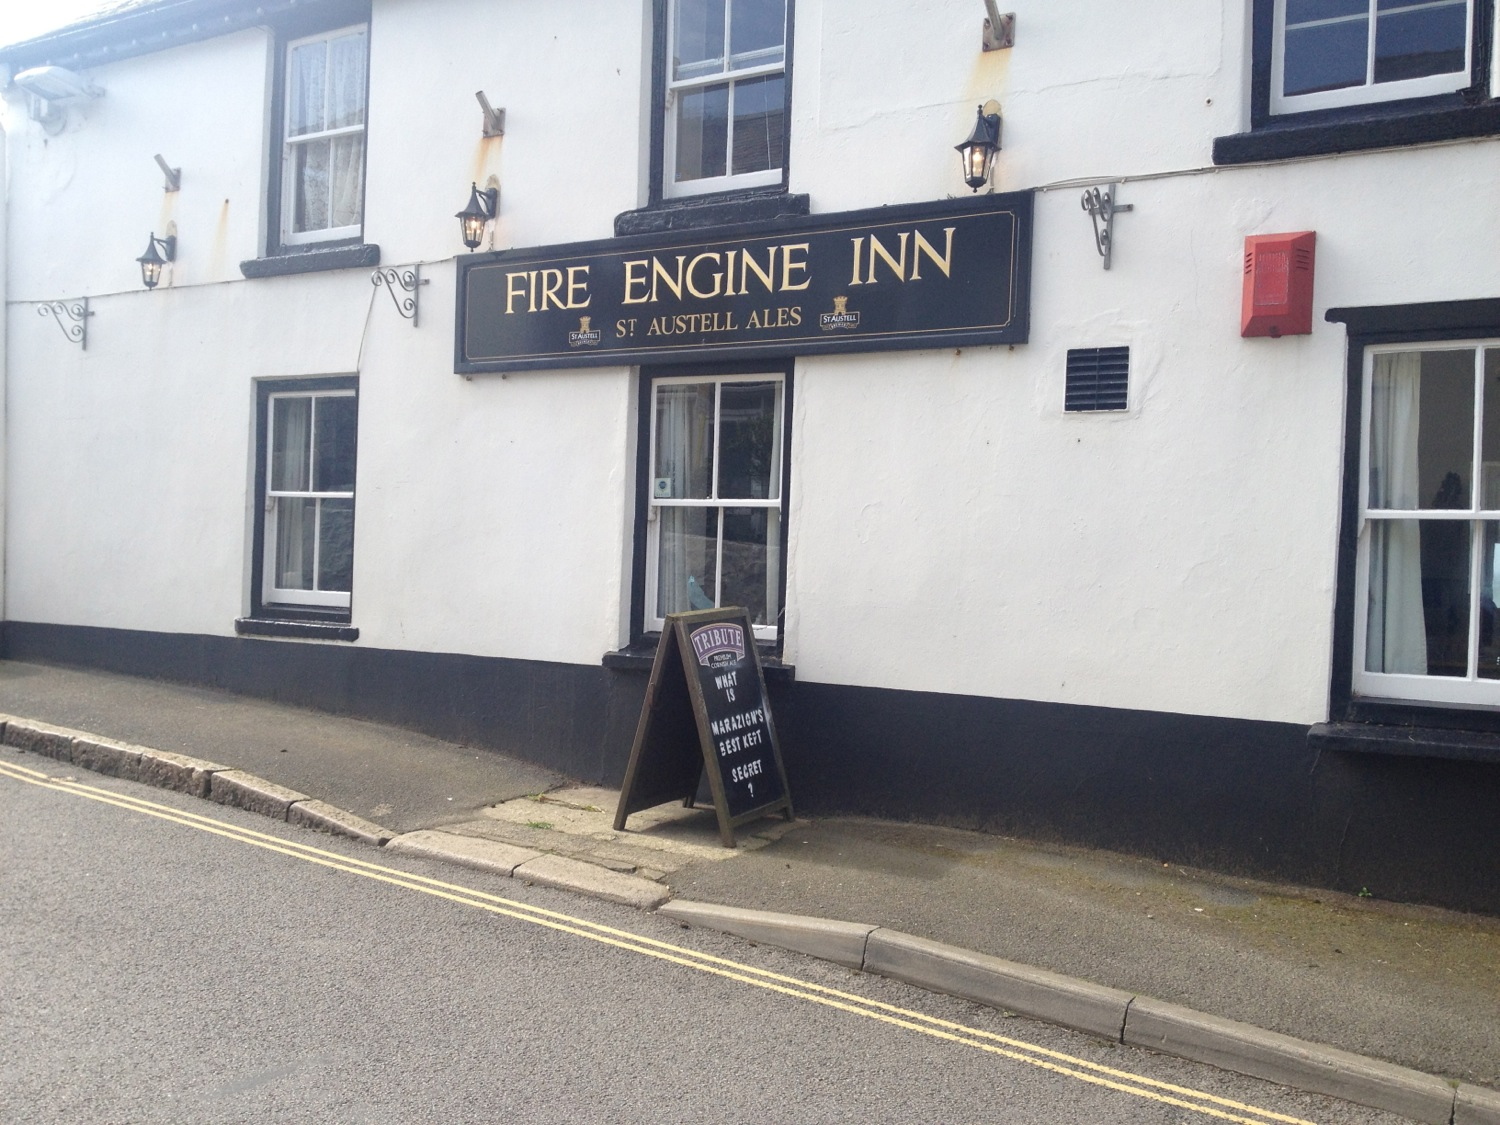 fire engine inn.jpg